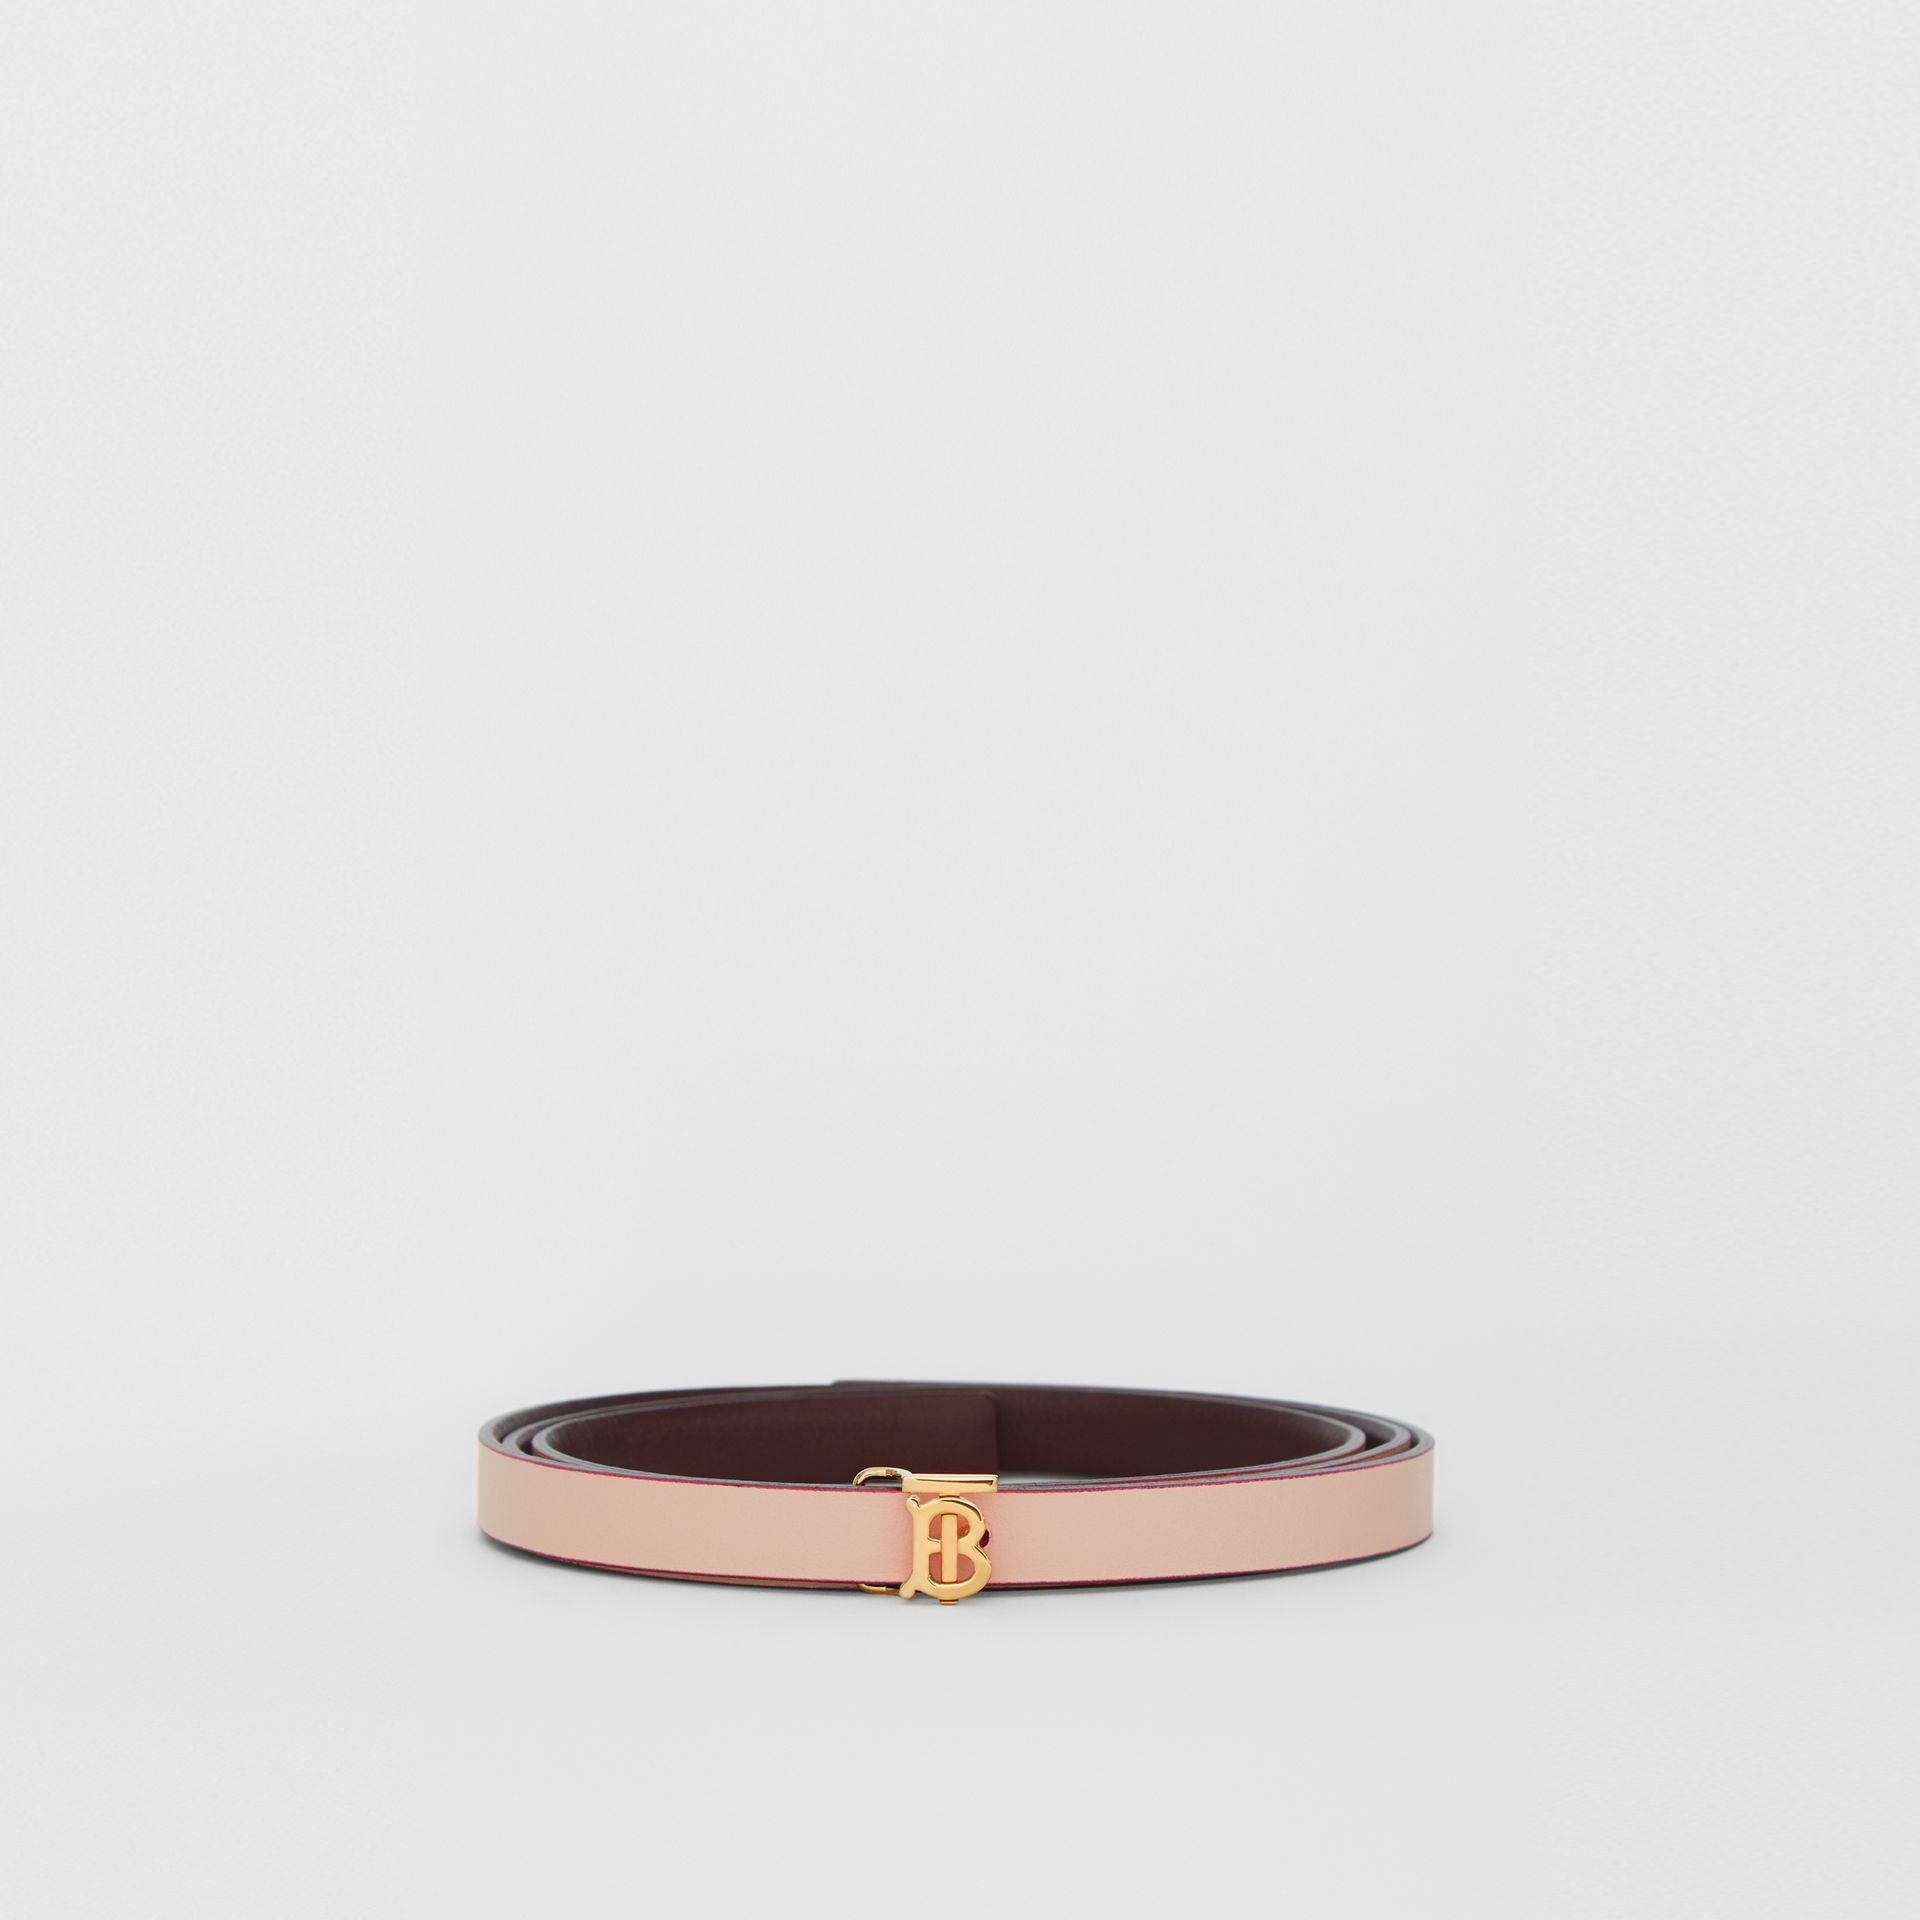 Reversible Monogram Motif Leather Wrap Belt in Oxblood/rose Beige - Women | Burberry Canada - gallery image 6